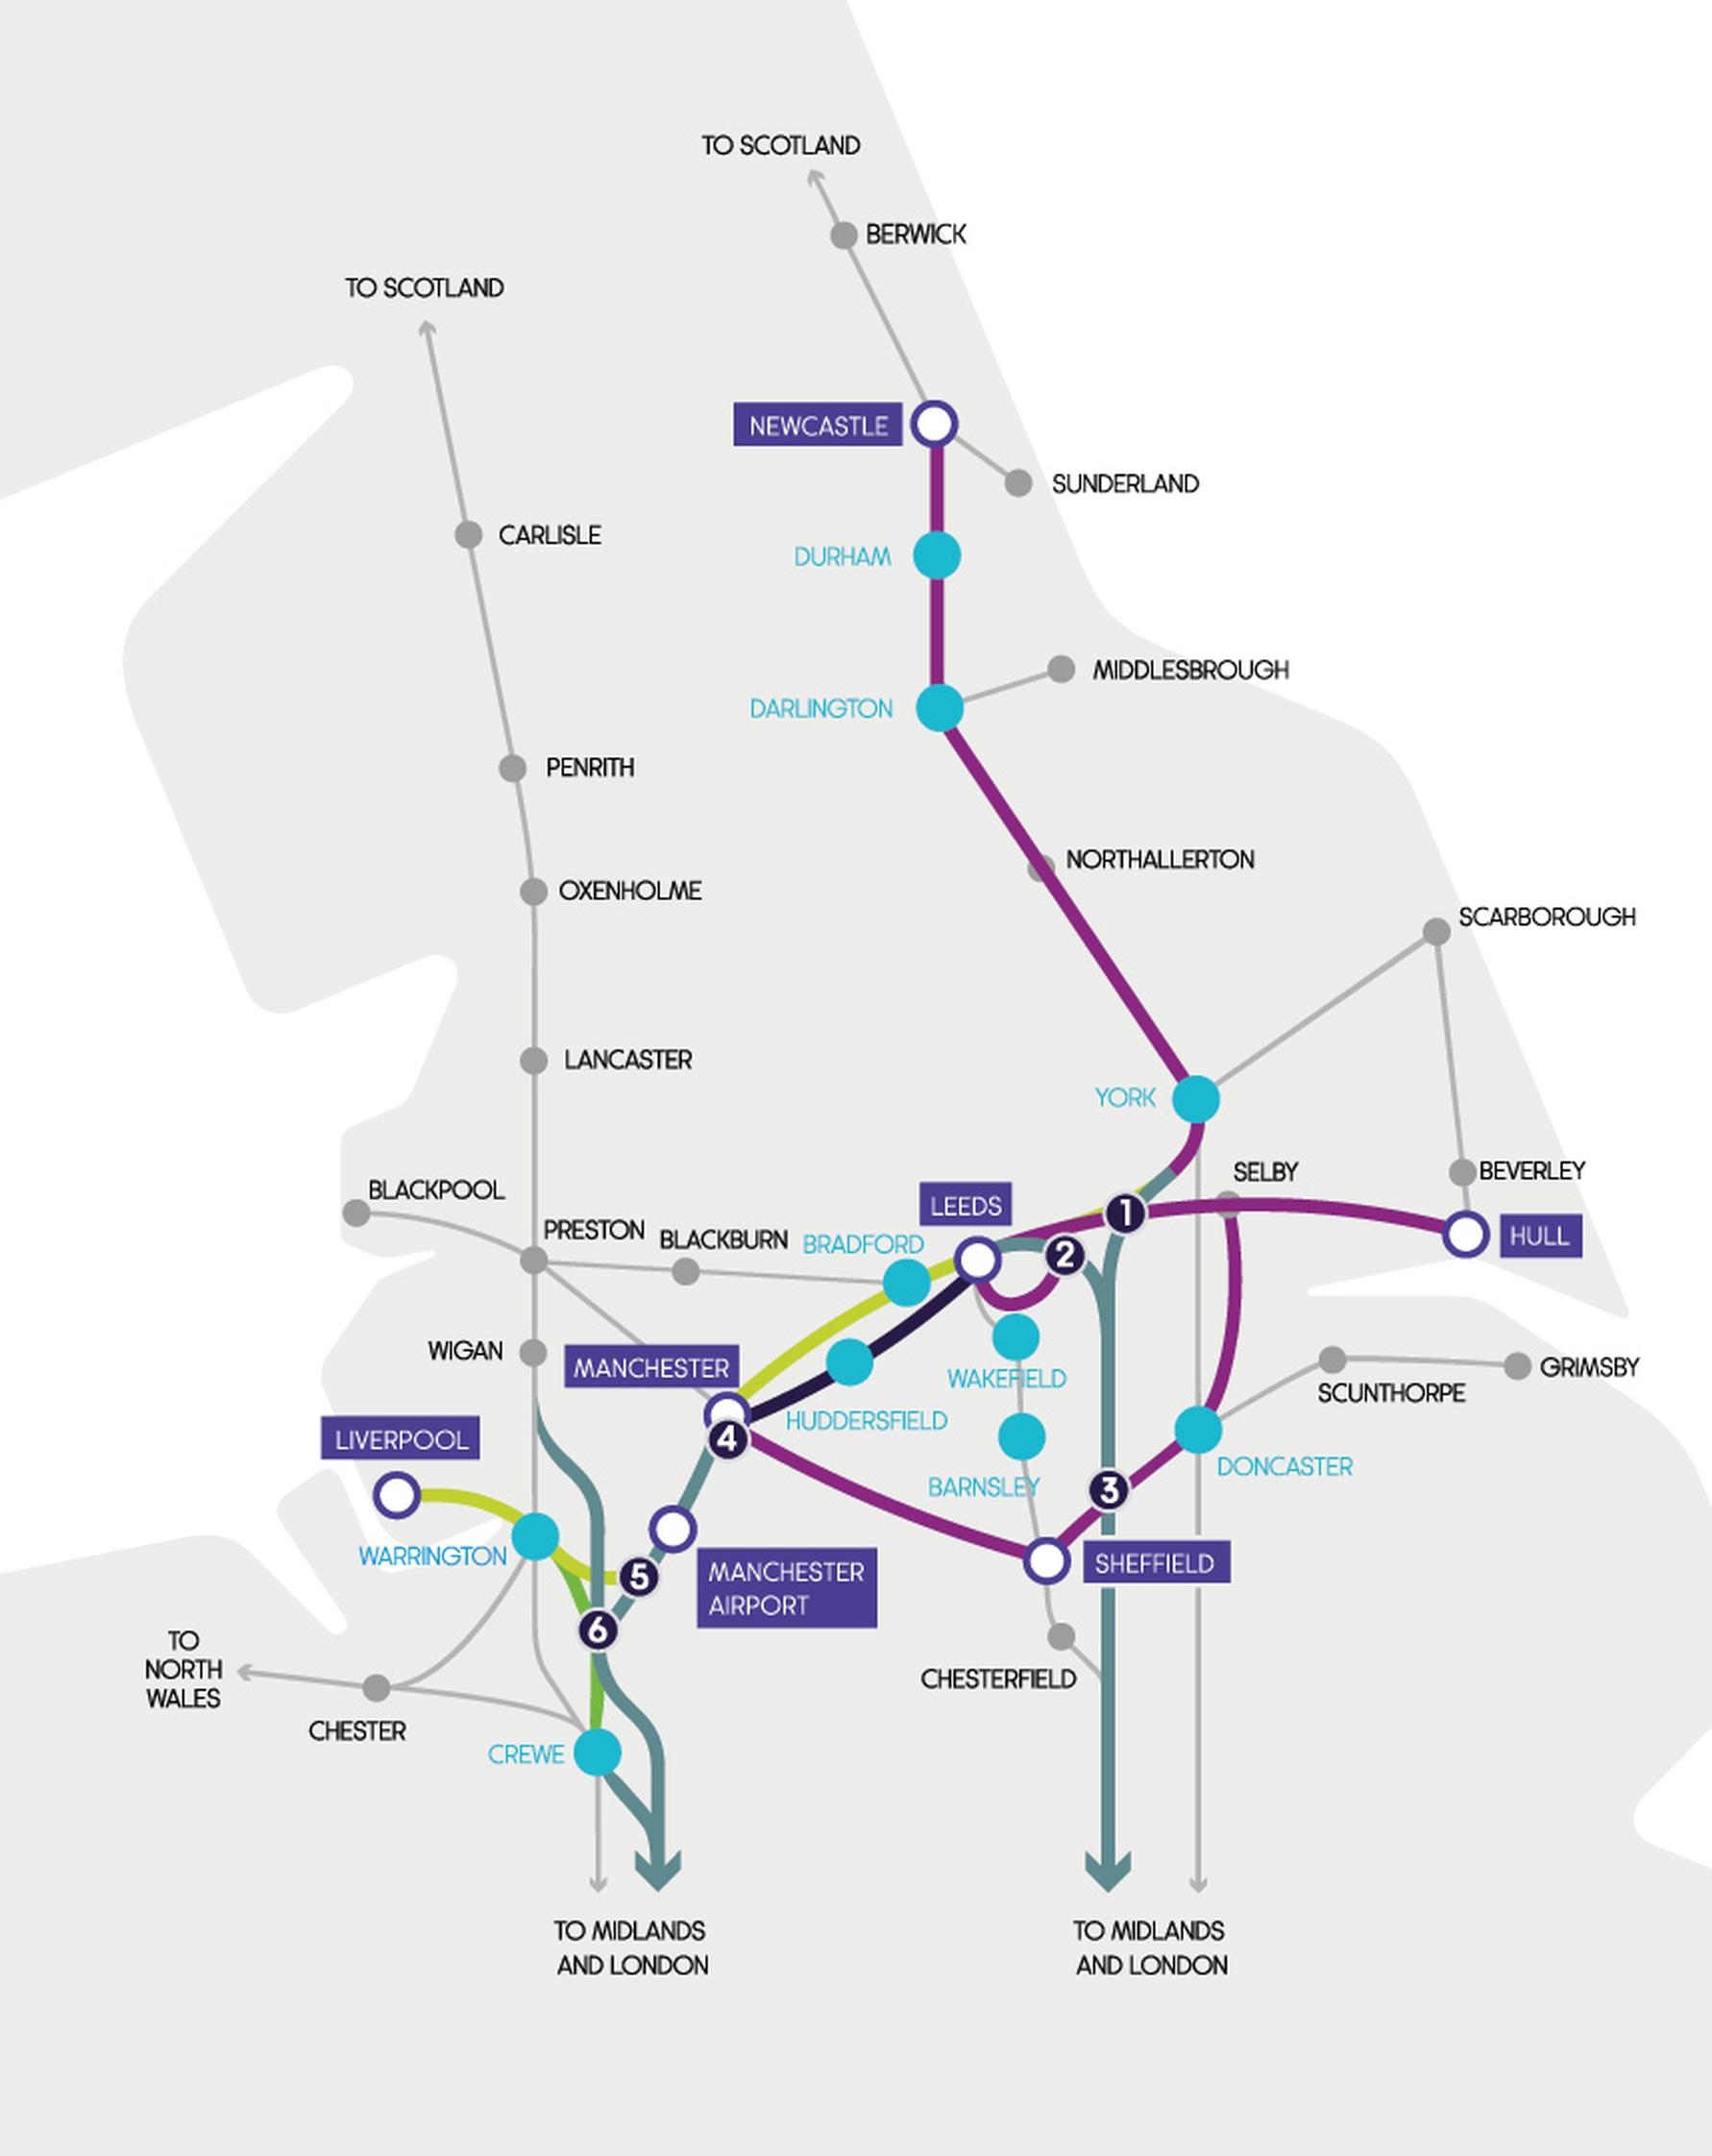 TfN's emerging vision of the Northern Powerhouse Rail (NPR) network: